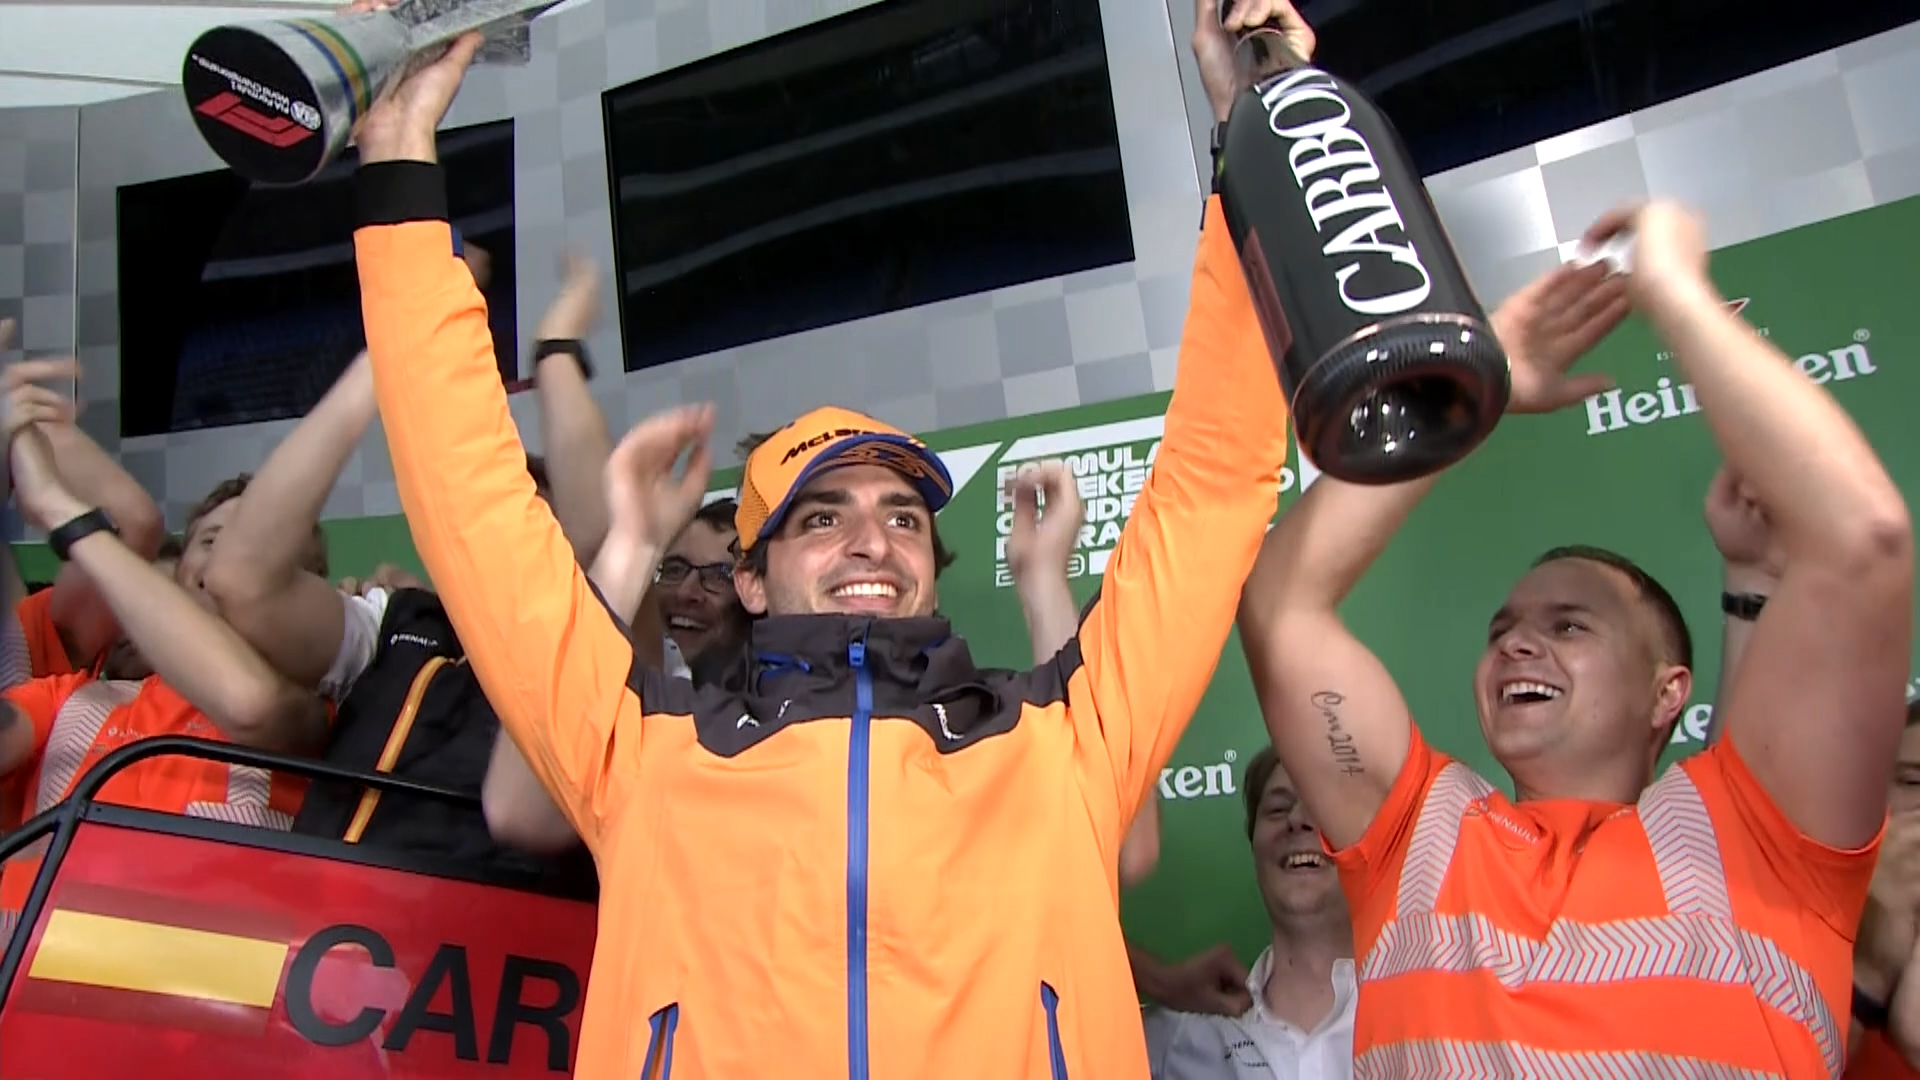 Carlos Sainz to Ferrari: His Top 5 F1 Races